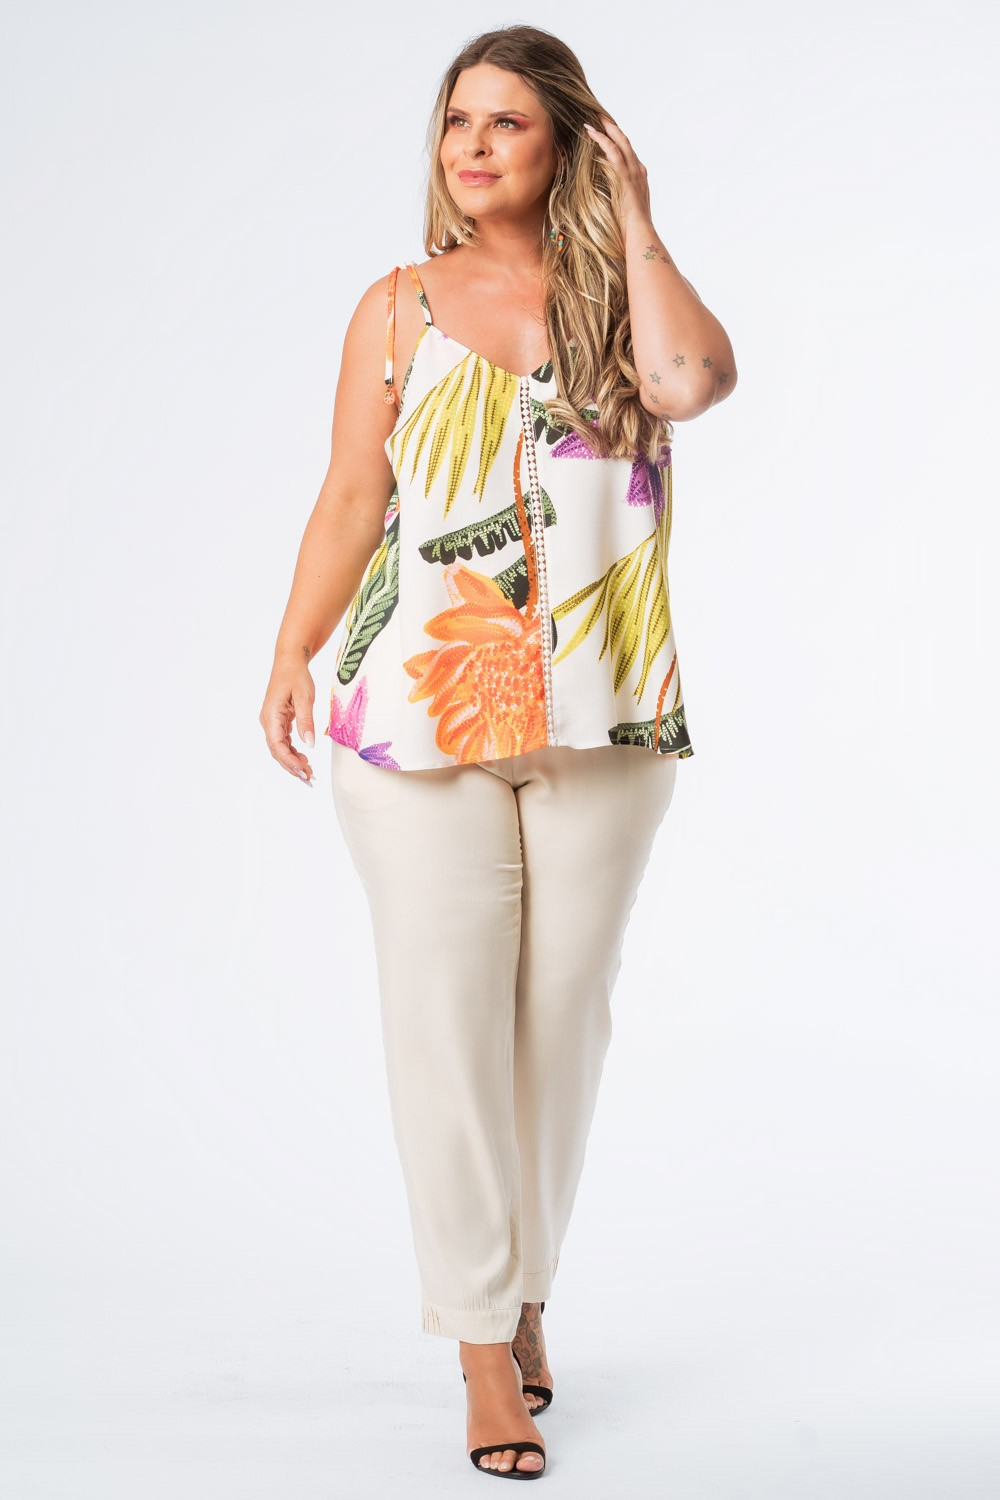 REGATA PLUS SIZE FRUTACOR OFFWHITE